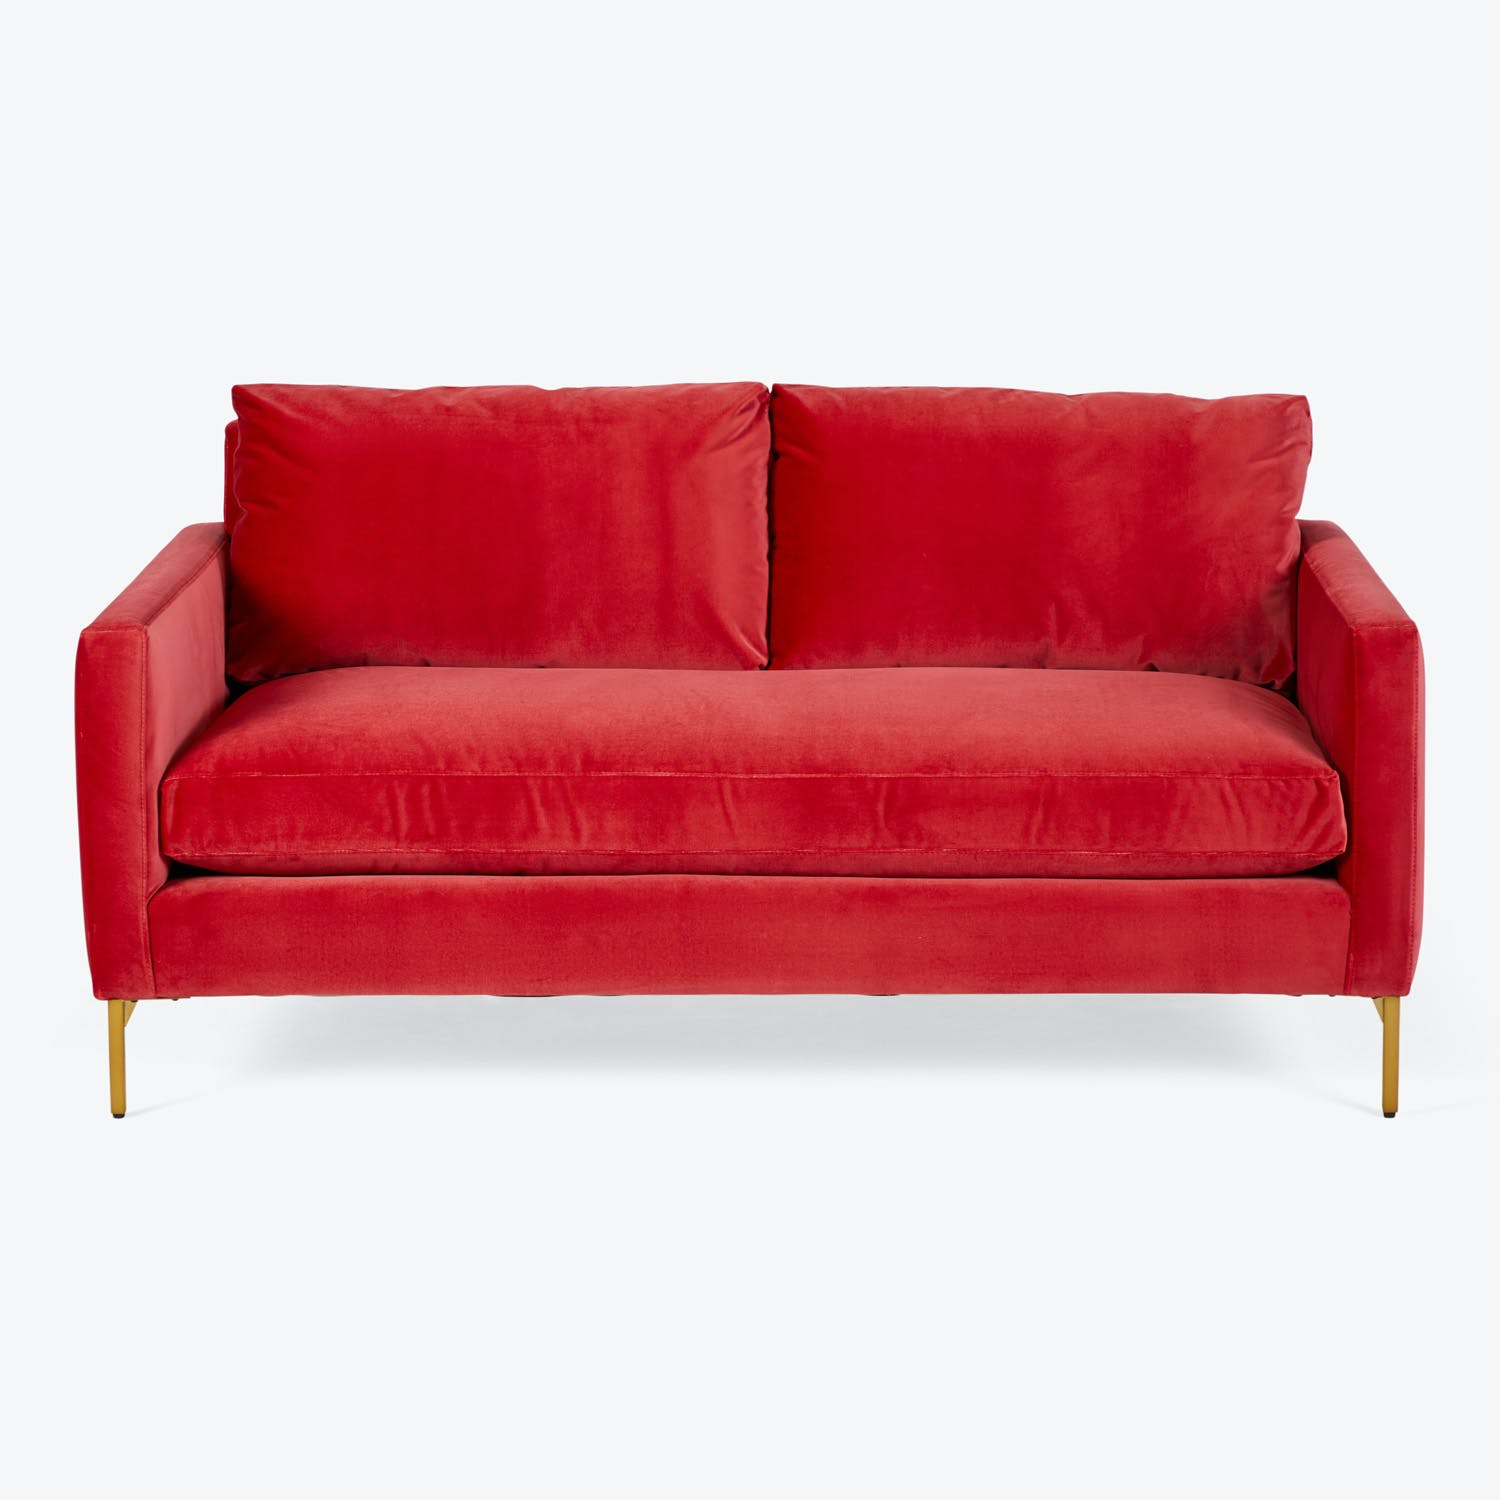 SoHo Brass Leg Sofa